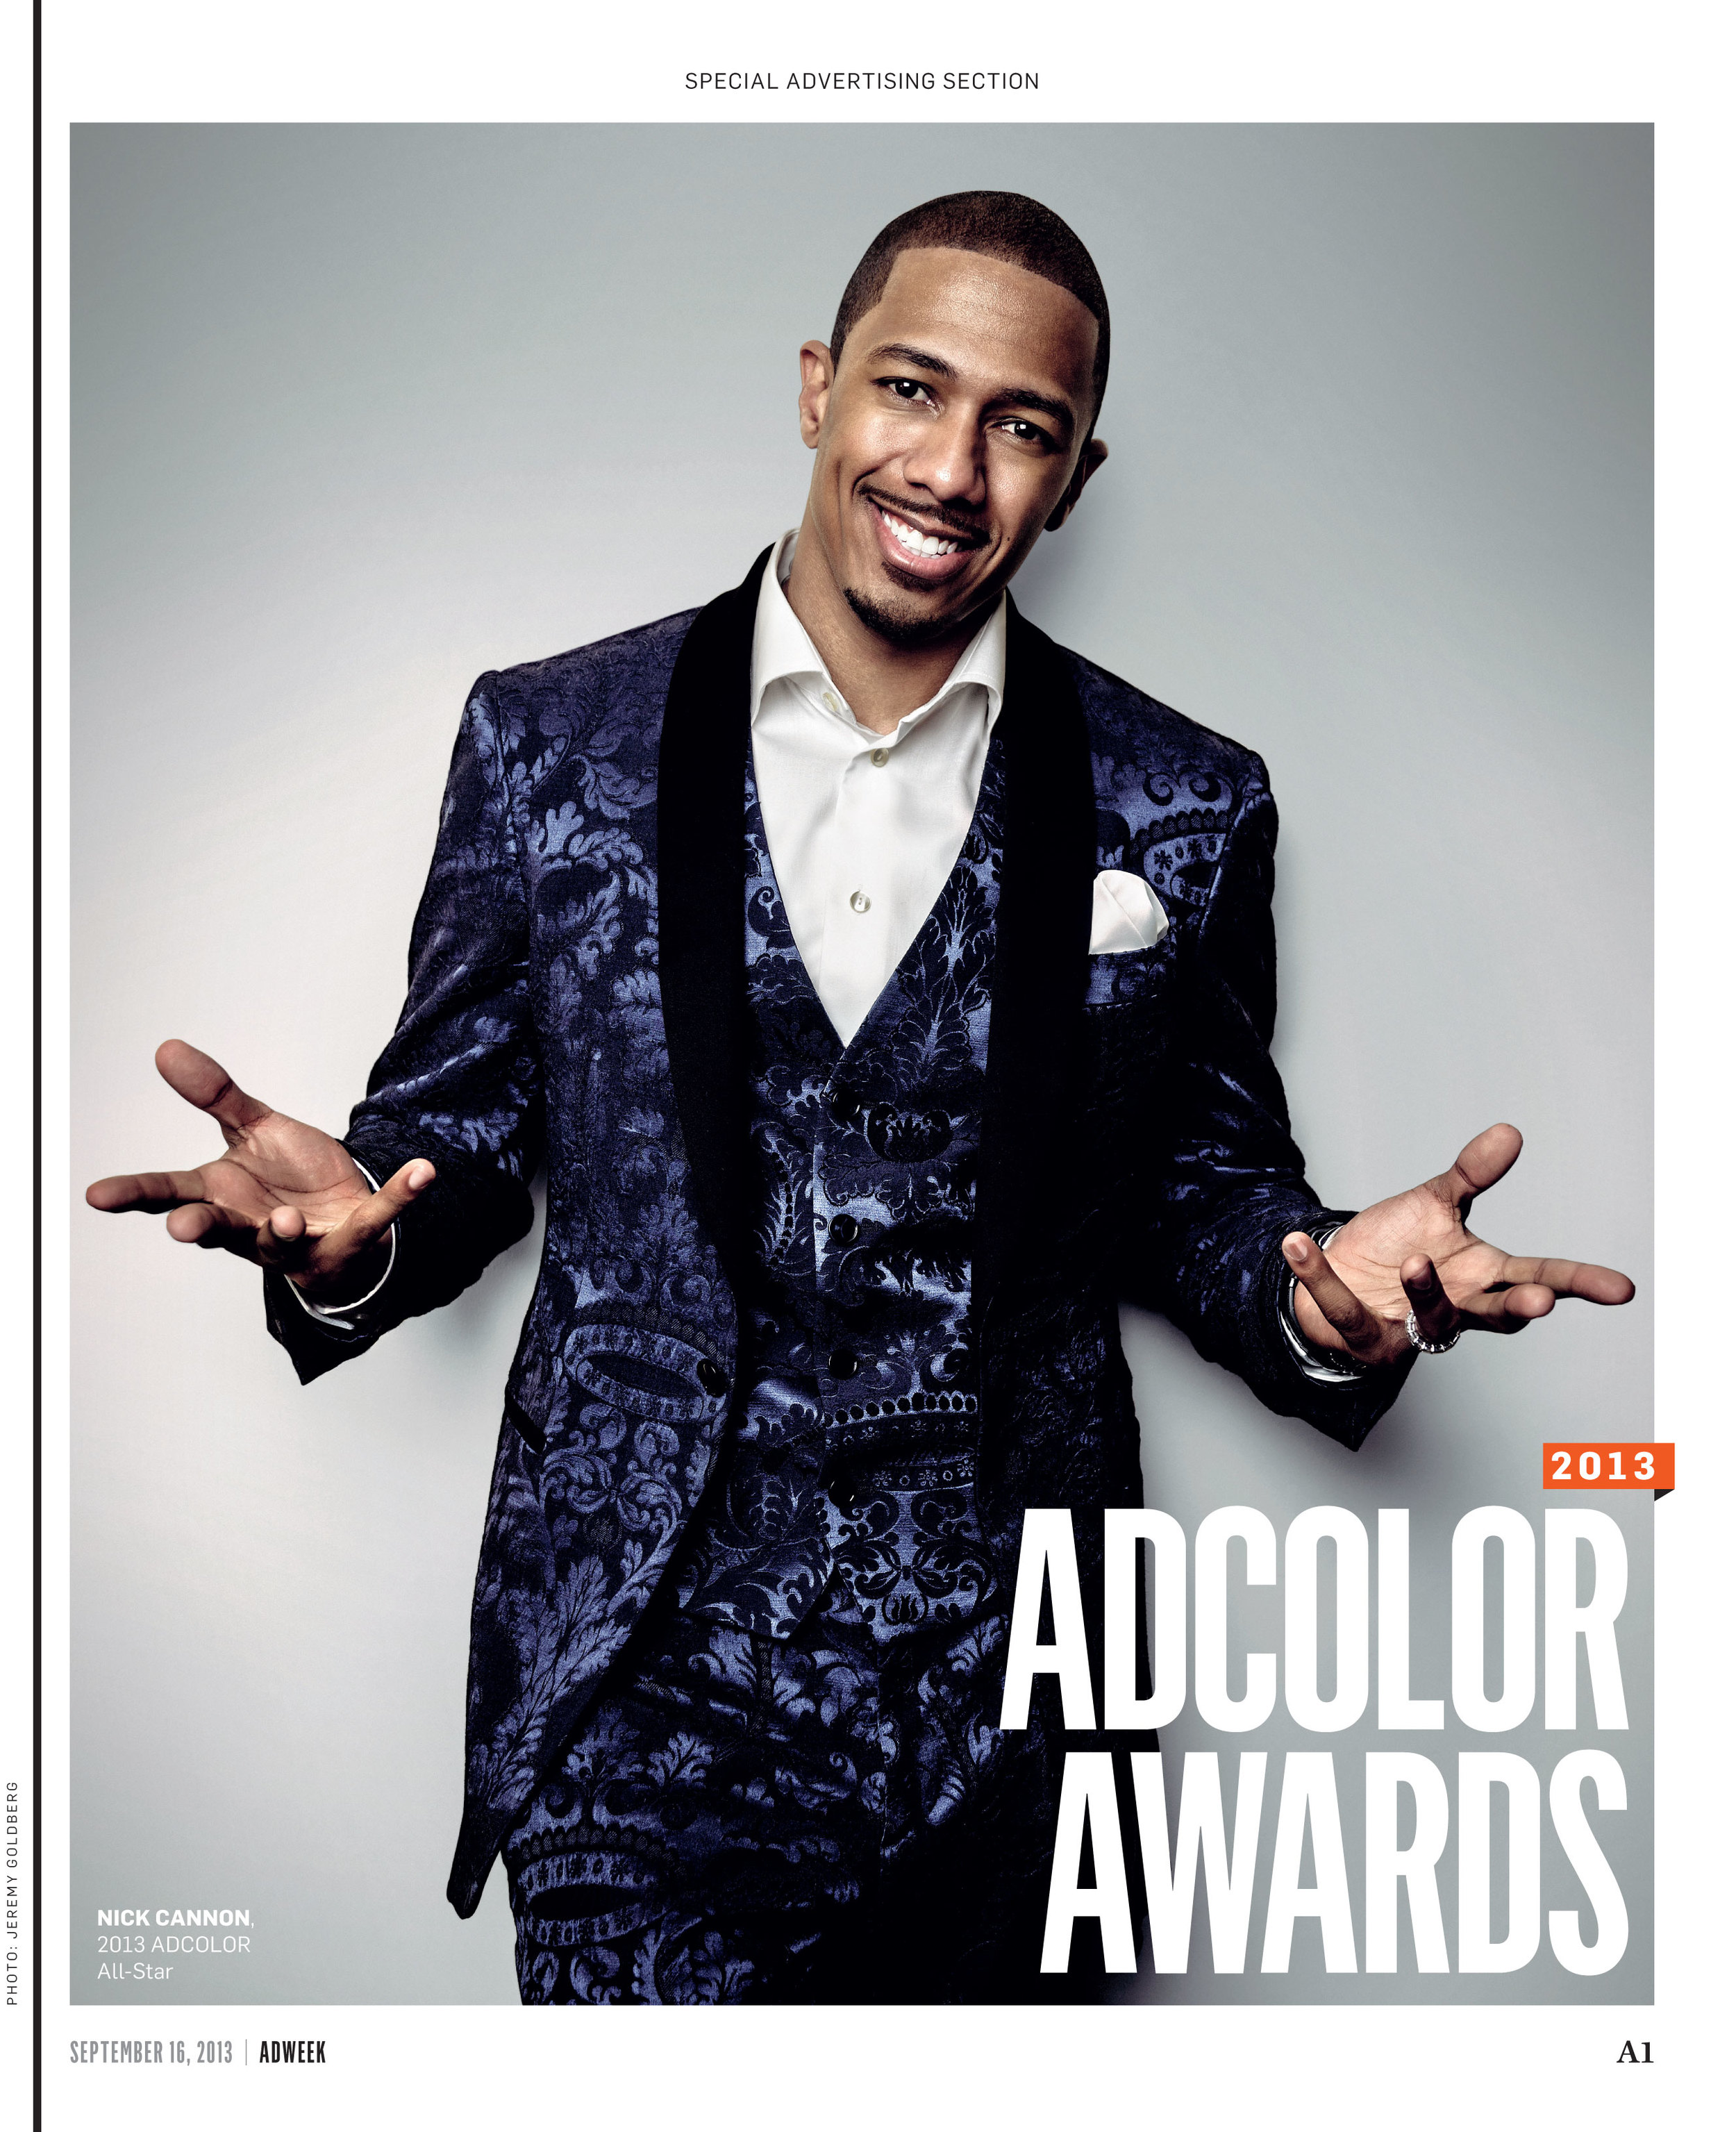 ADCOLOR Awards 2014 cover